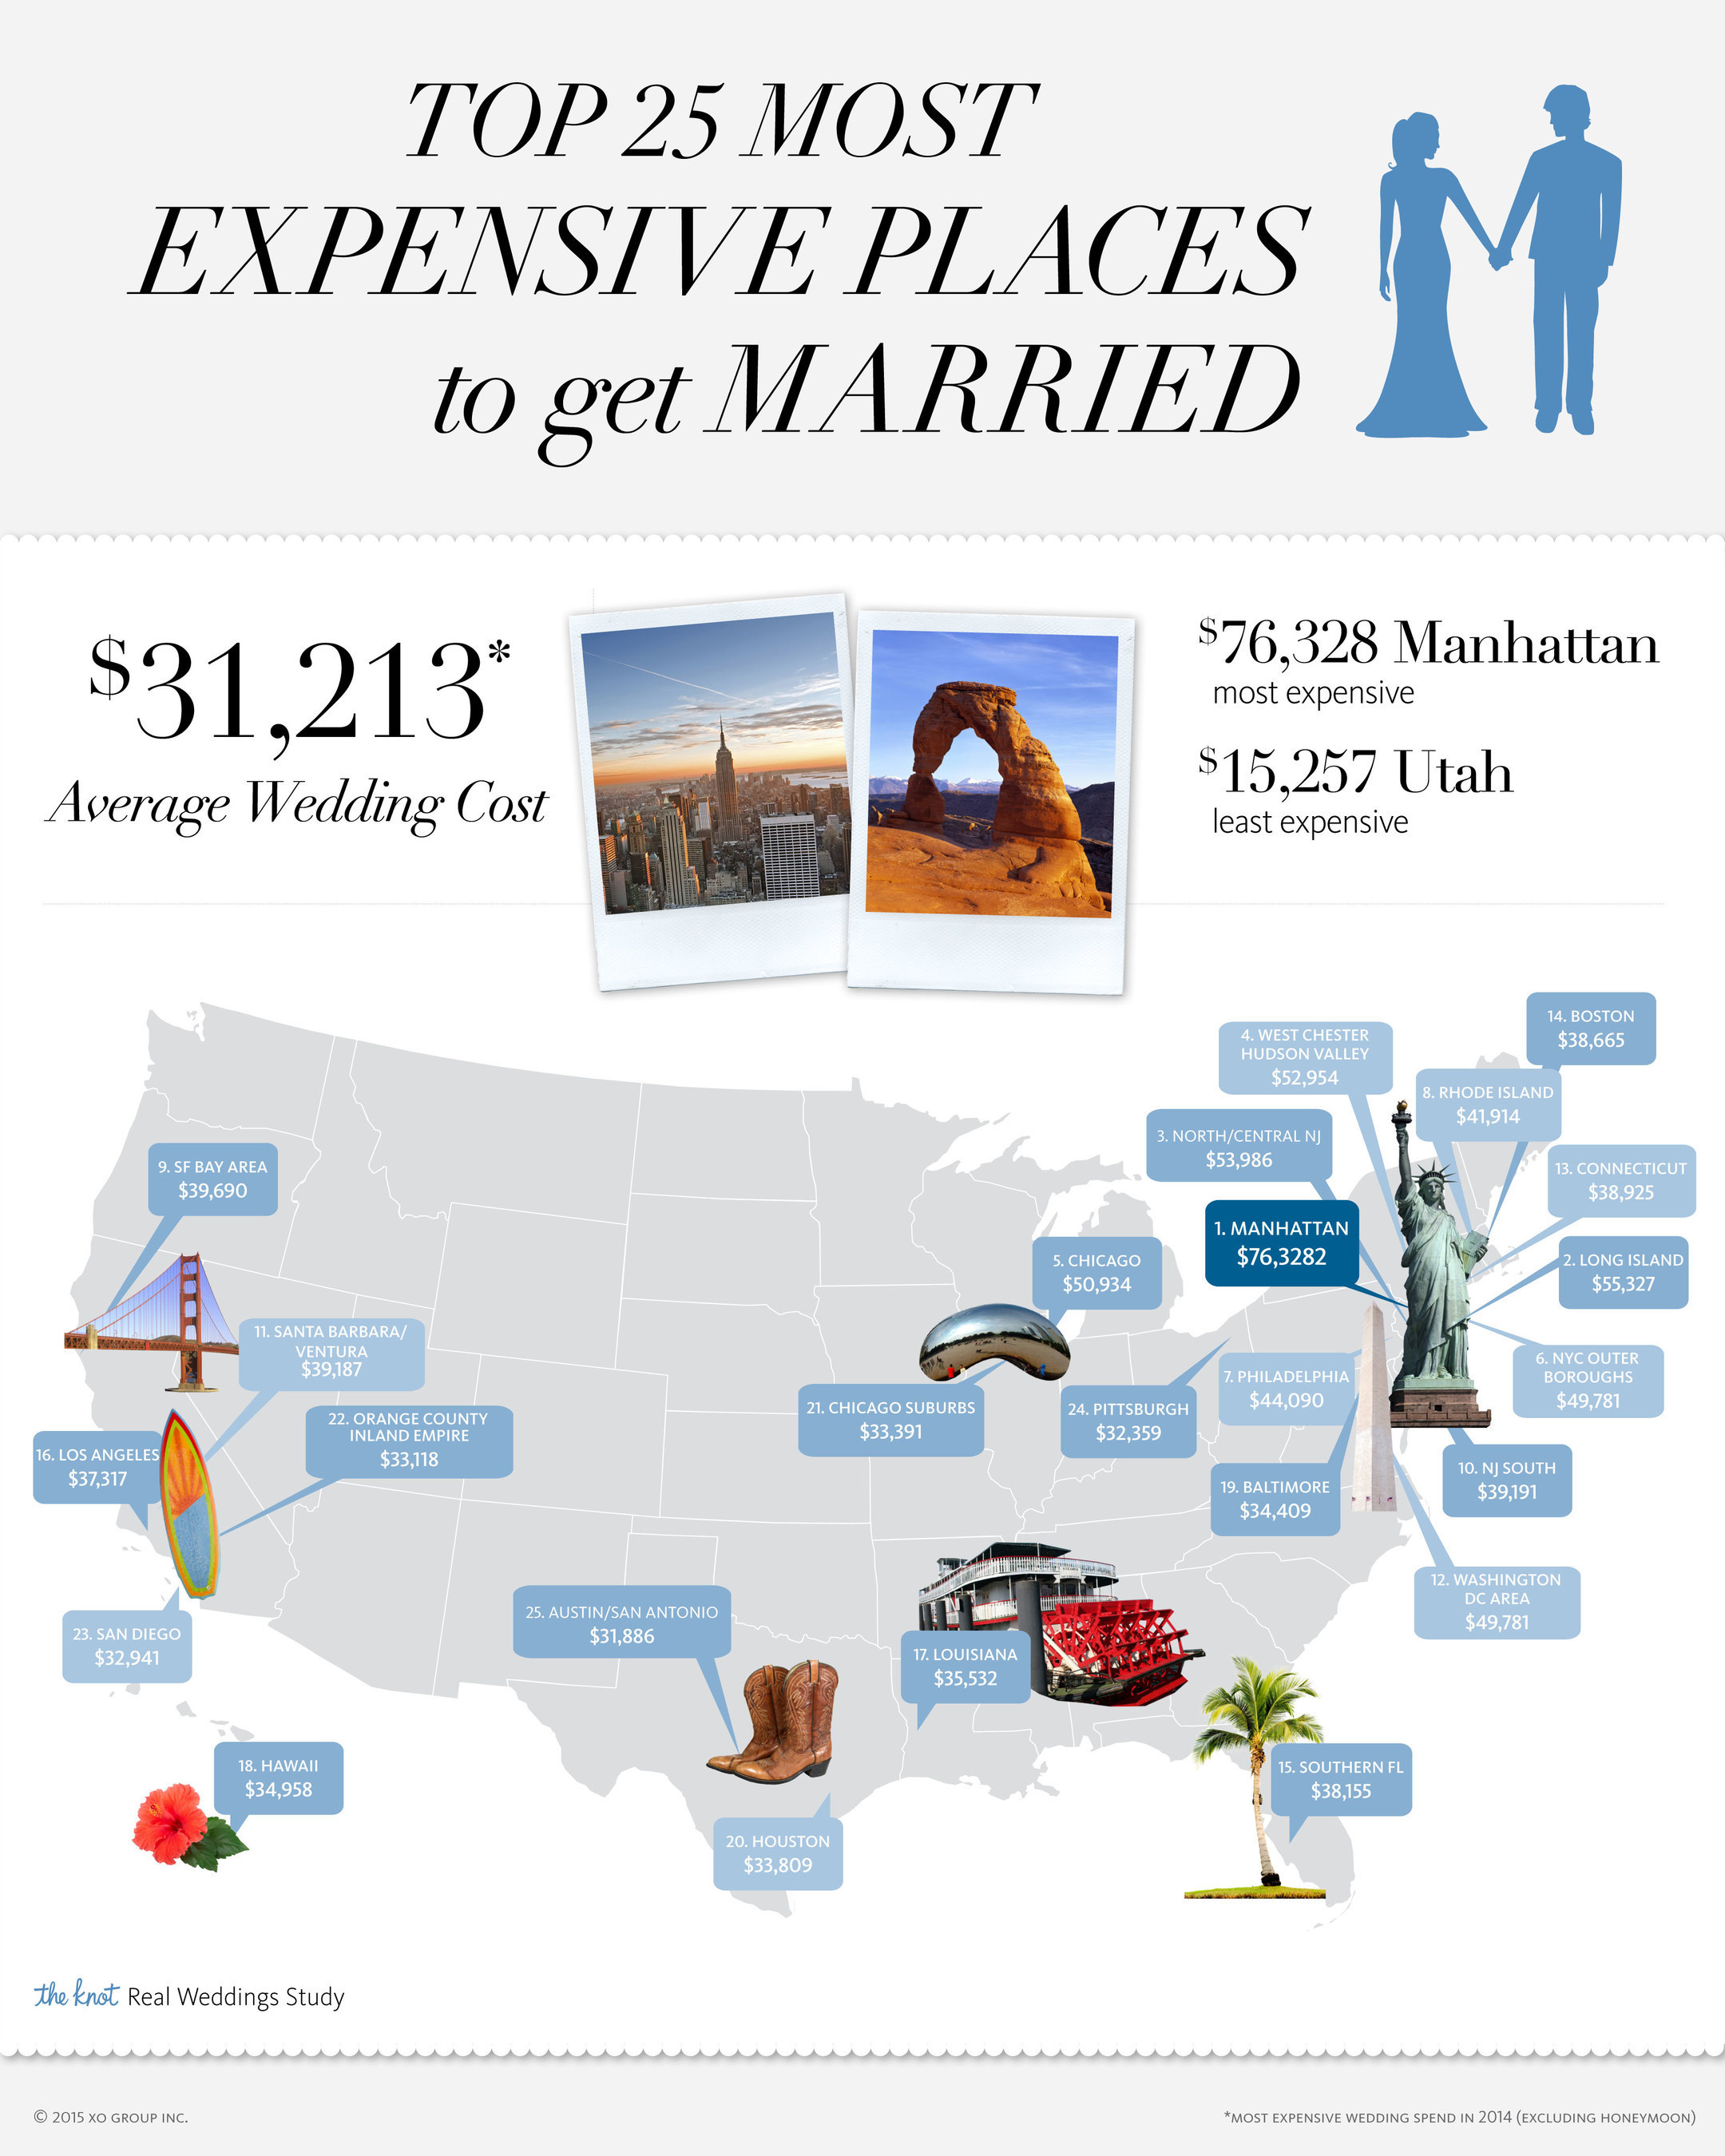 The Knot The 1 Wedding Site Releases 2014 Real Weddings Study